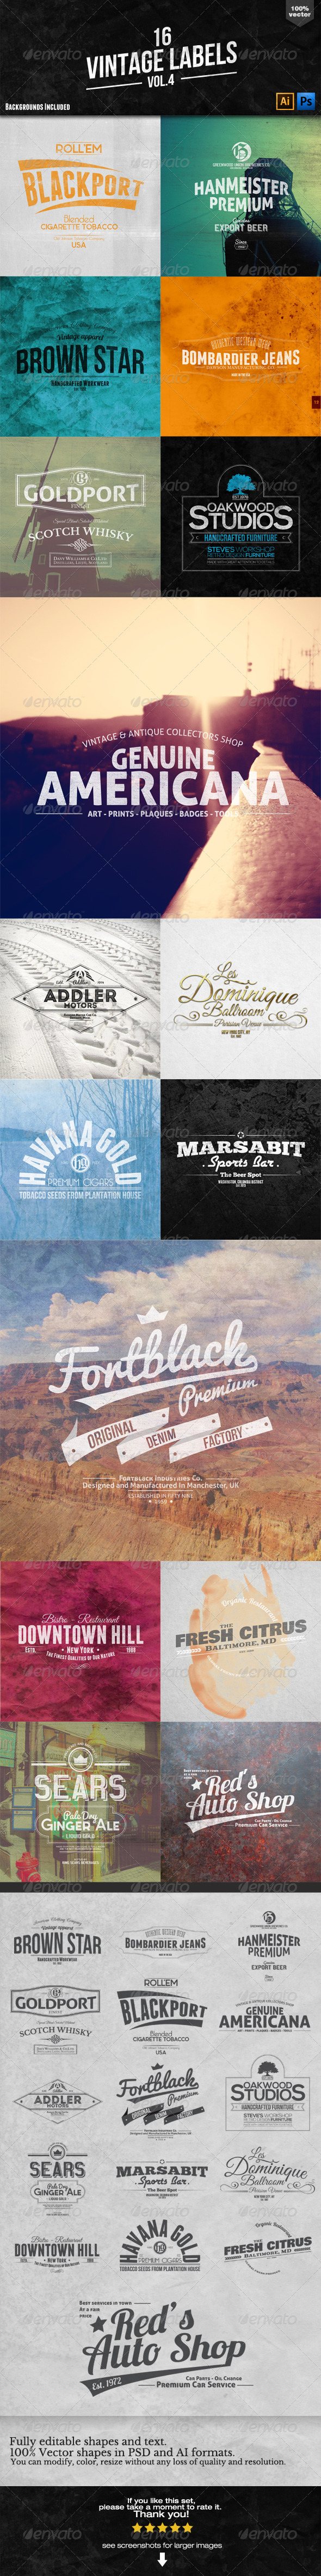 16 Vintage Labels and Badges Vol.4 - Badges & Stickers Web Elements